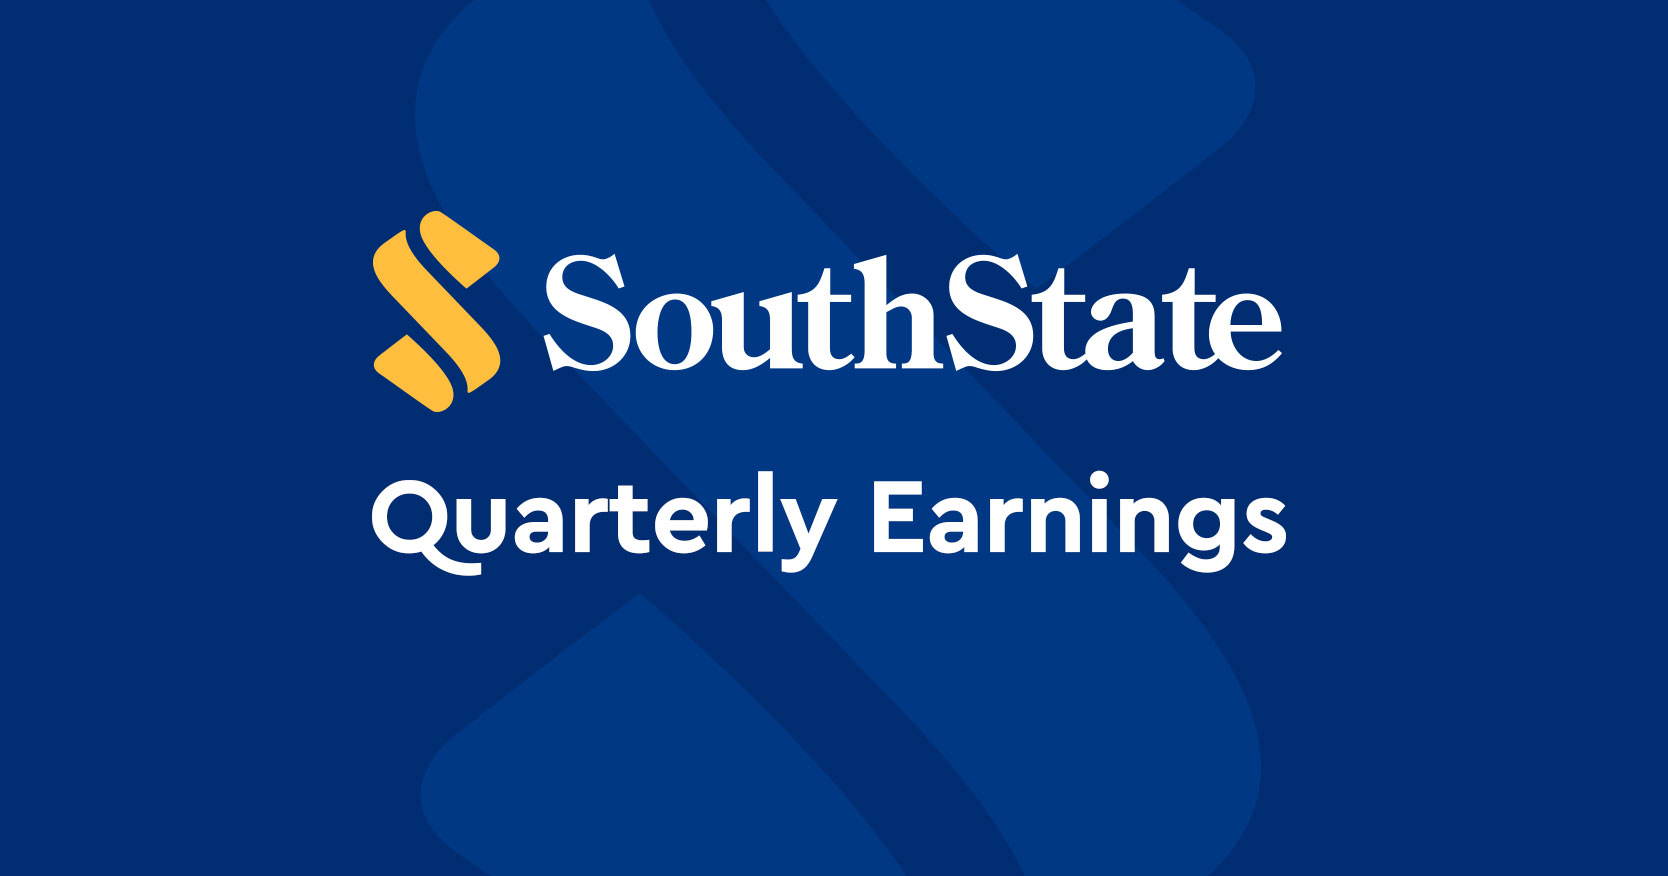 SouthState Quarterly Earnings